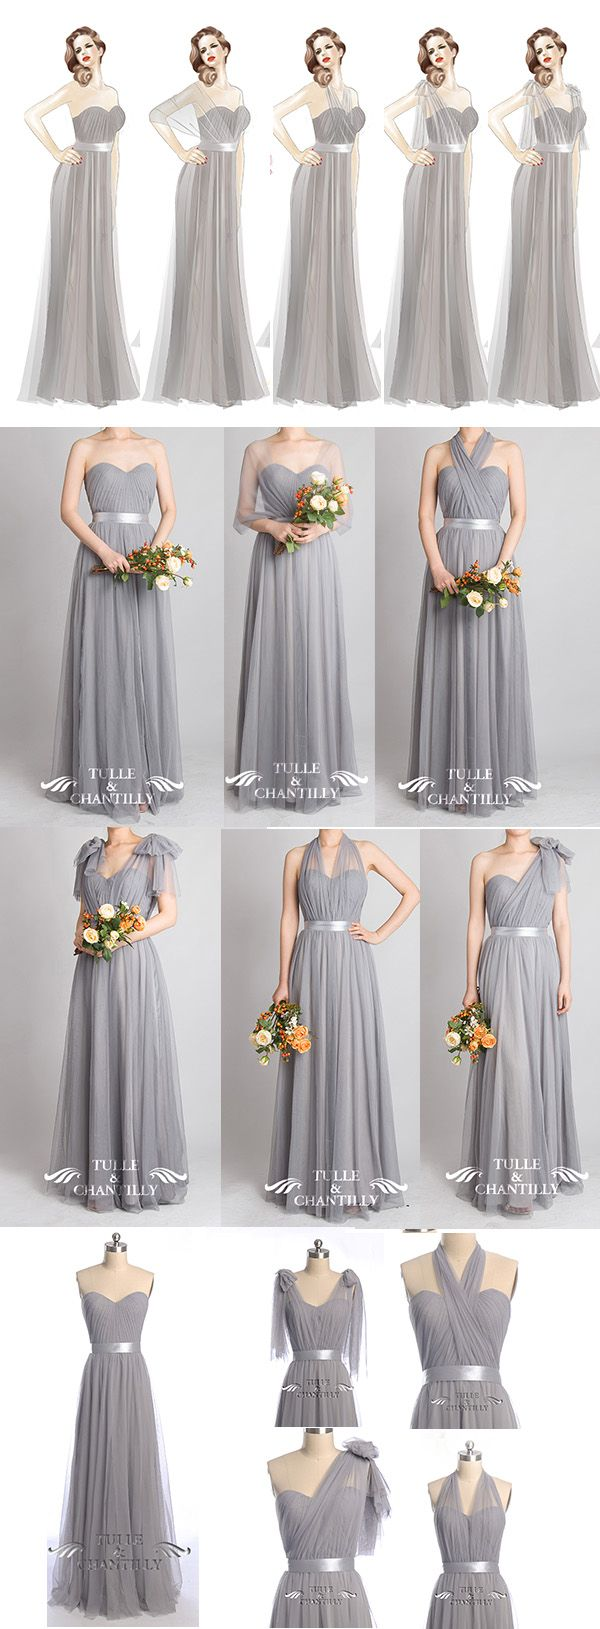 Grey wedding color ideas - Tulle Convertible Medium Grey Multi Bridesmaid Dresses @kelsc @bensbitesandbbq @clarkson0244 @waconover